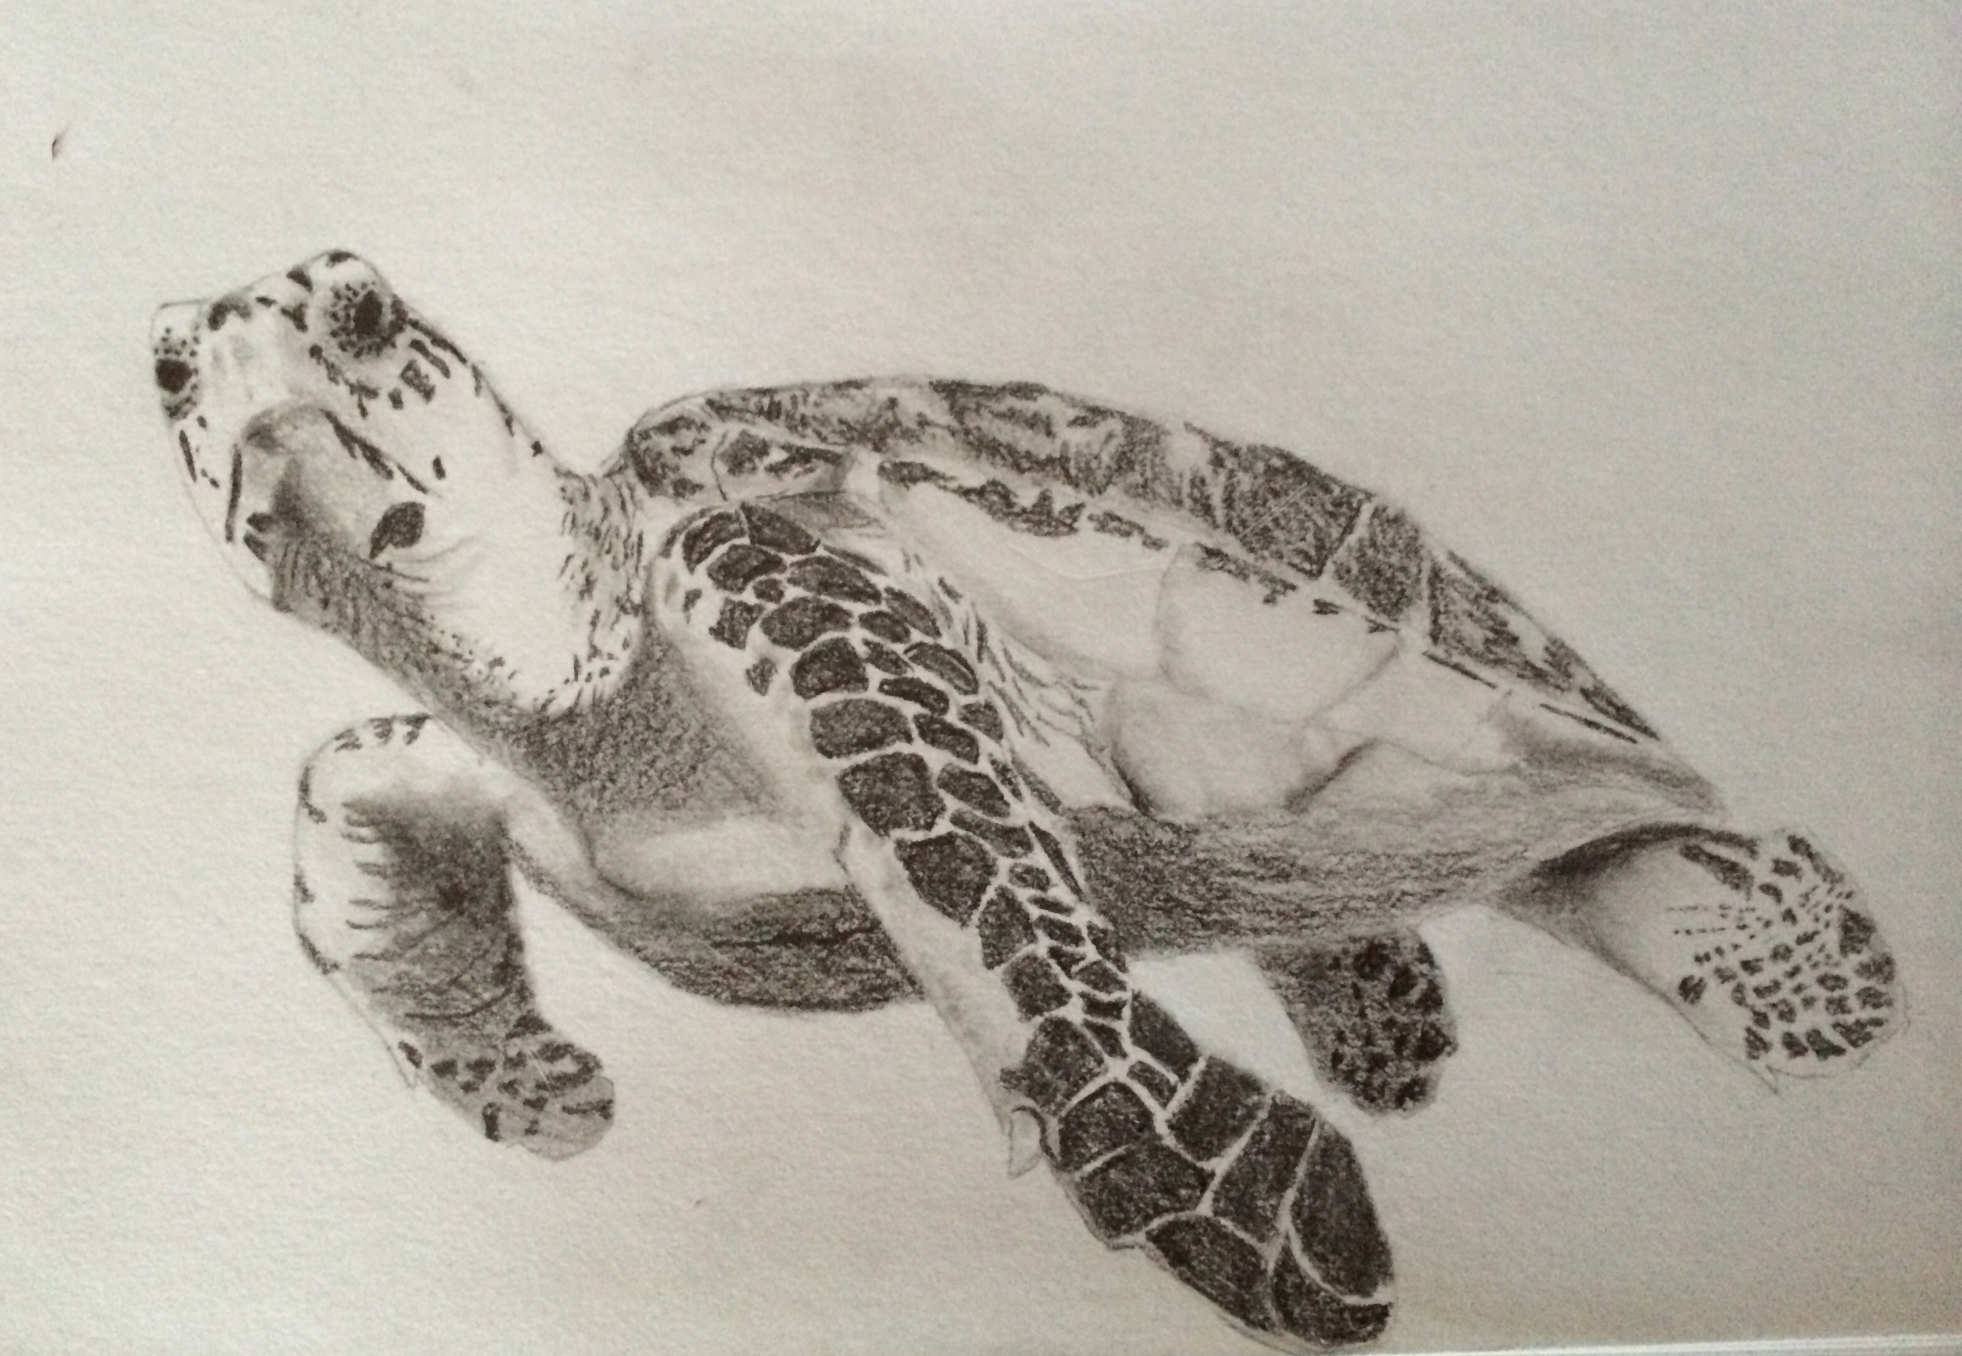 A Turtle Swimming Through The Turmoil Of My Soul